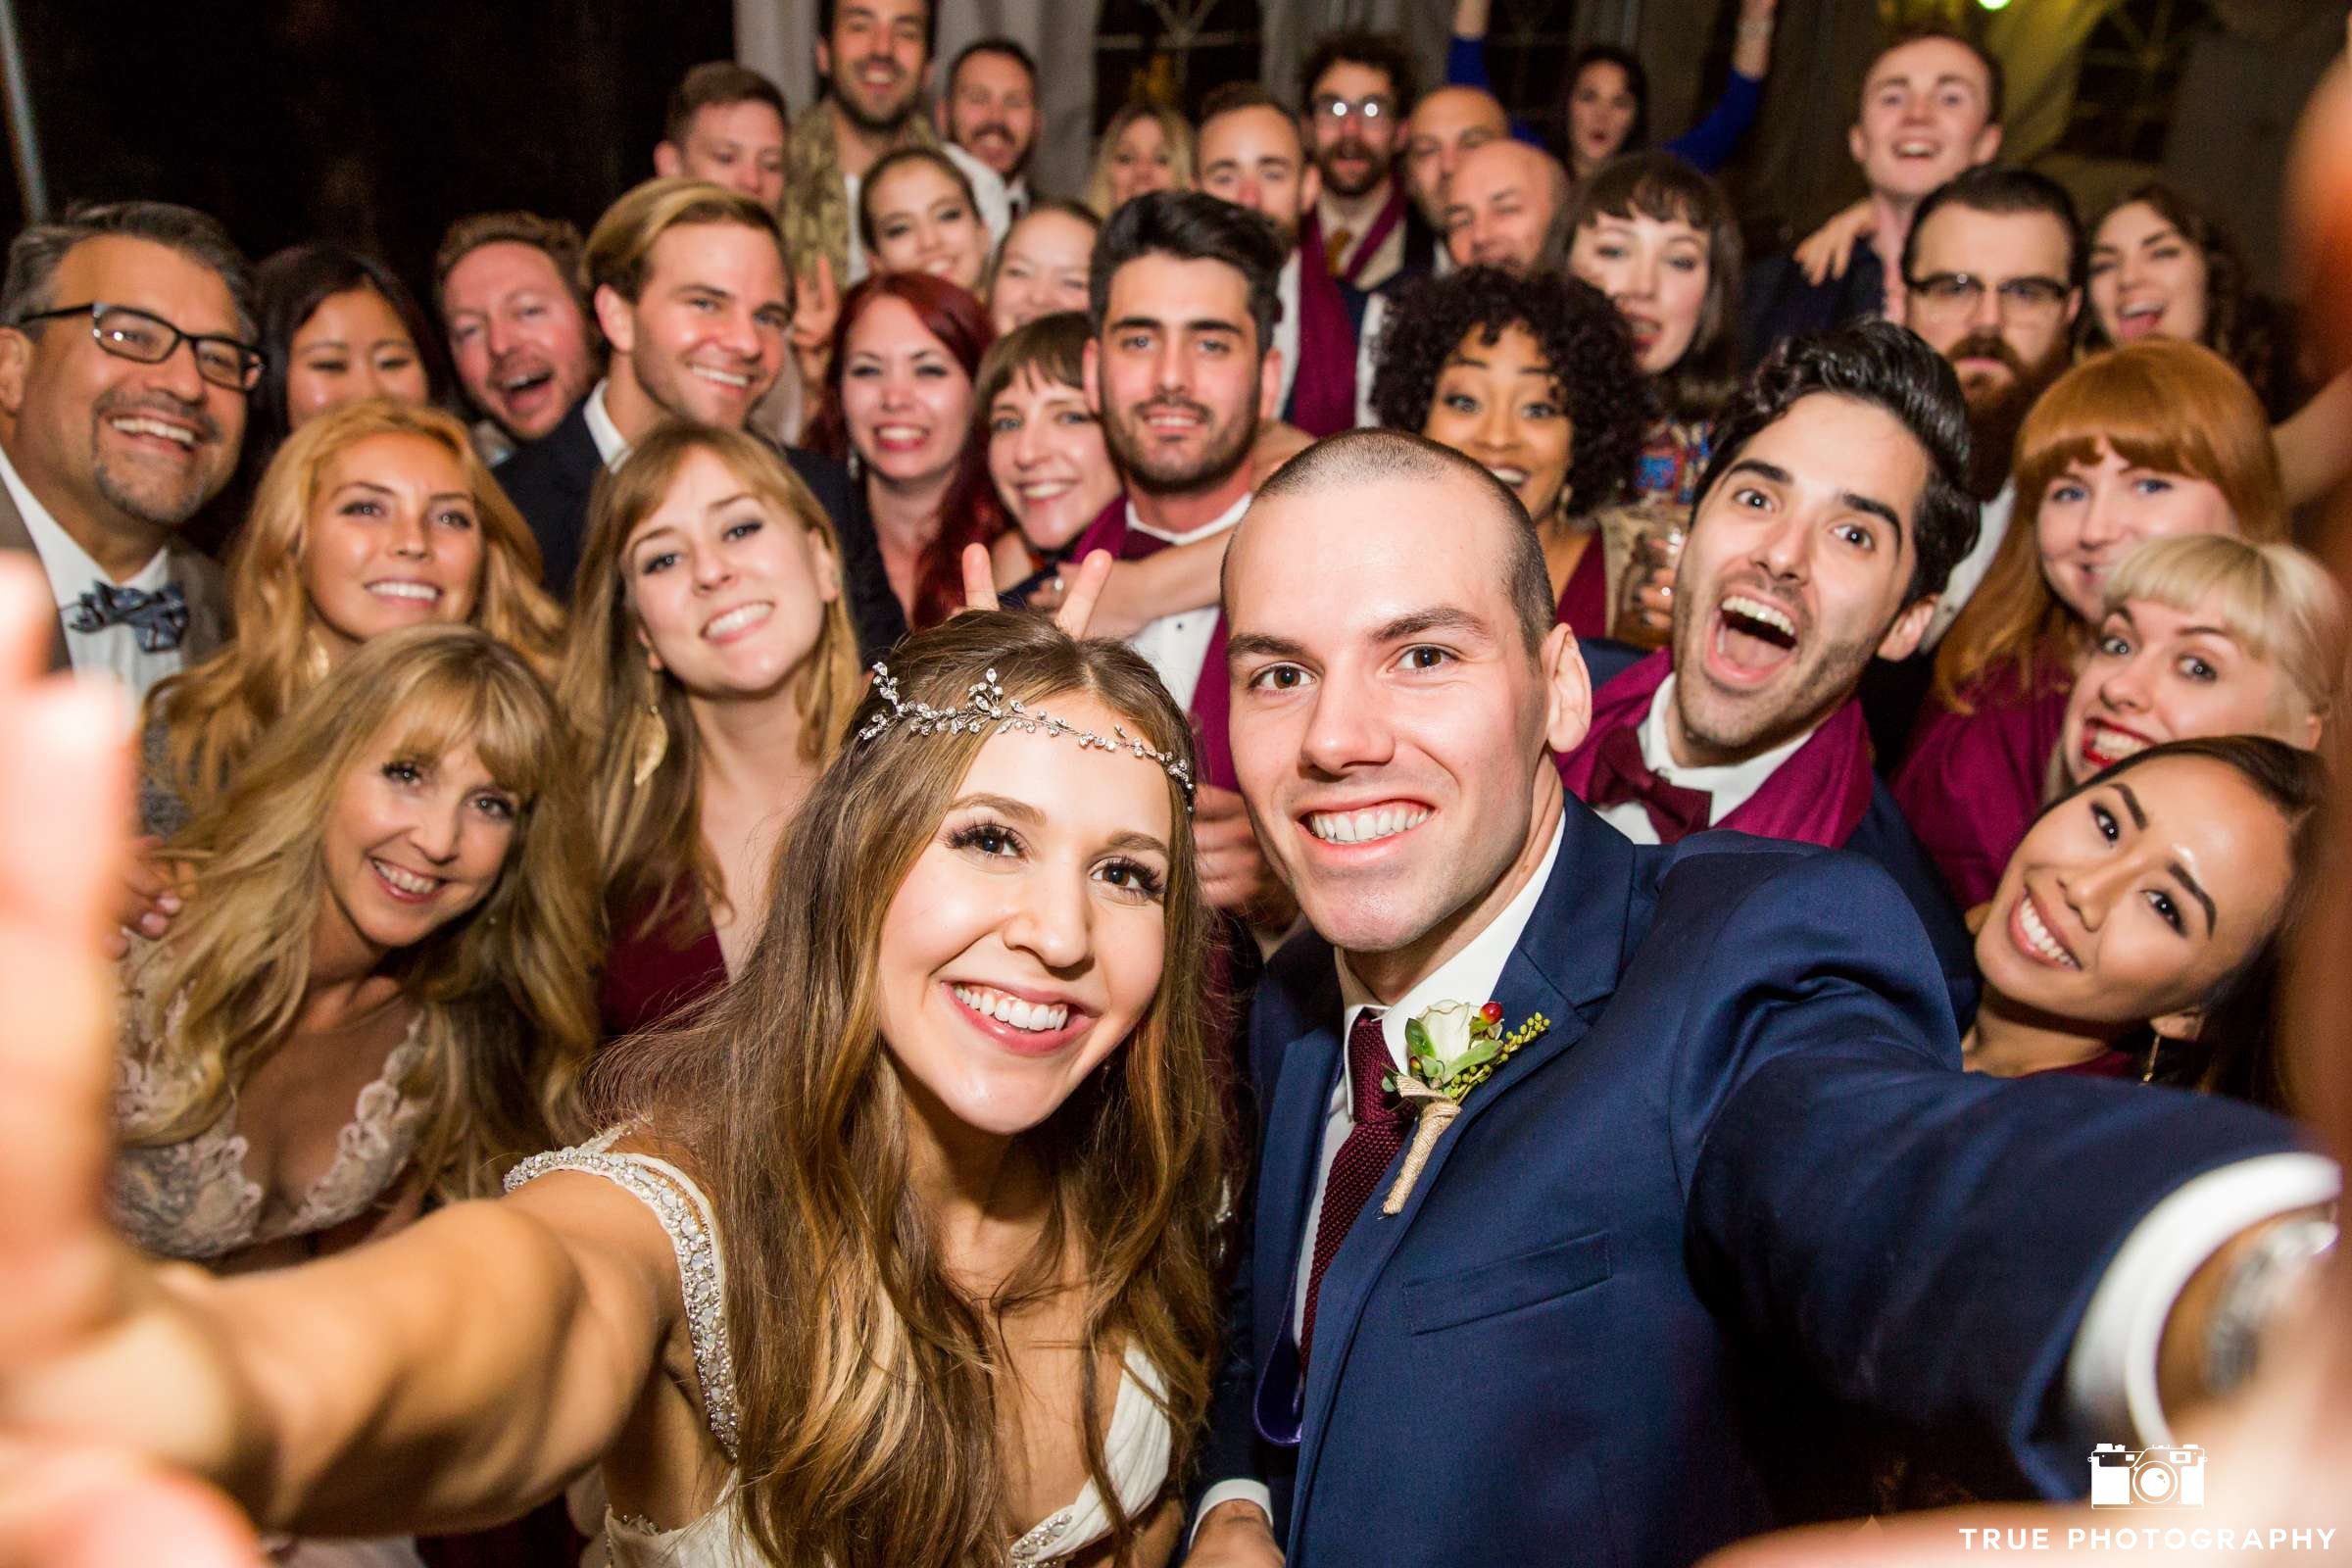 A newly married couple captures the moment with a selfie.